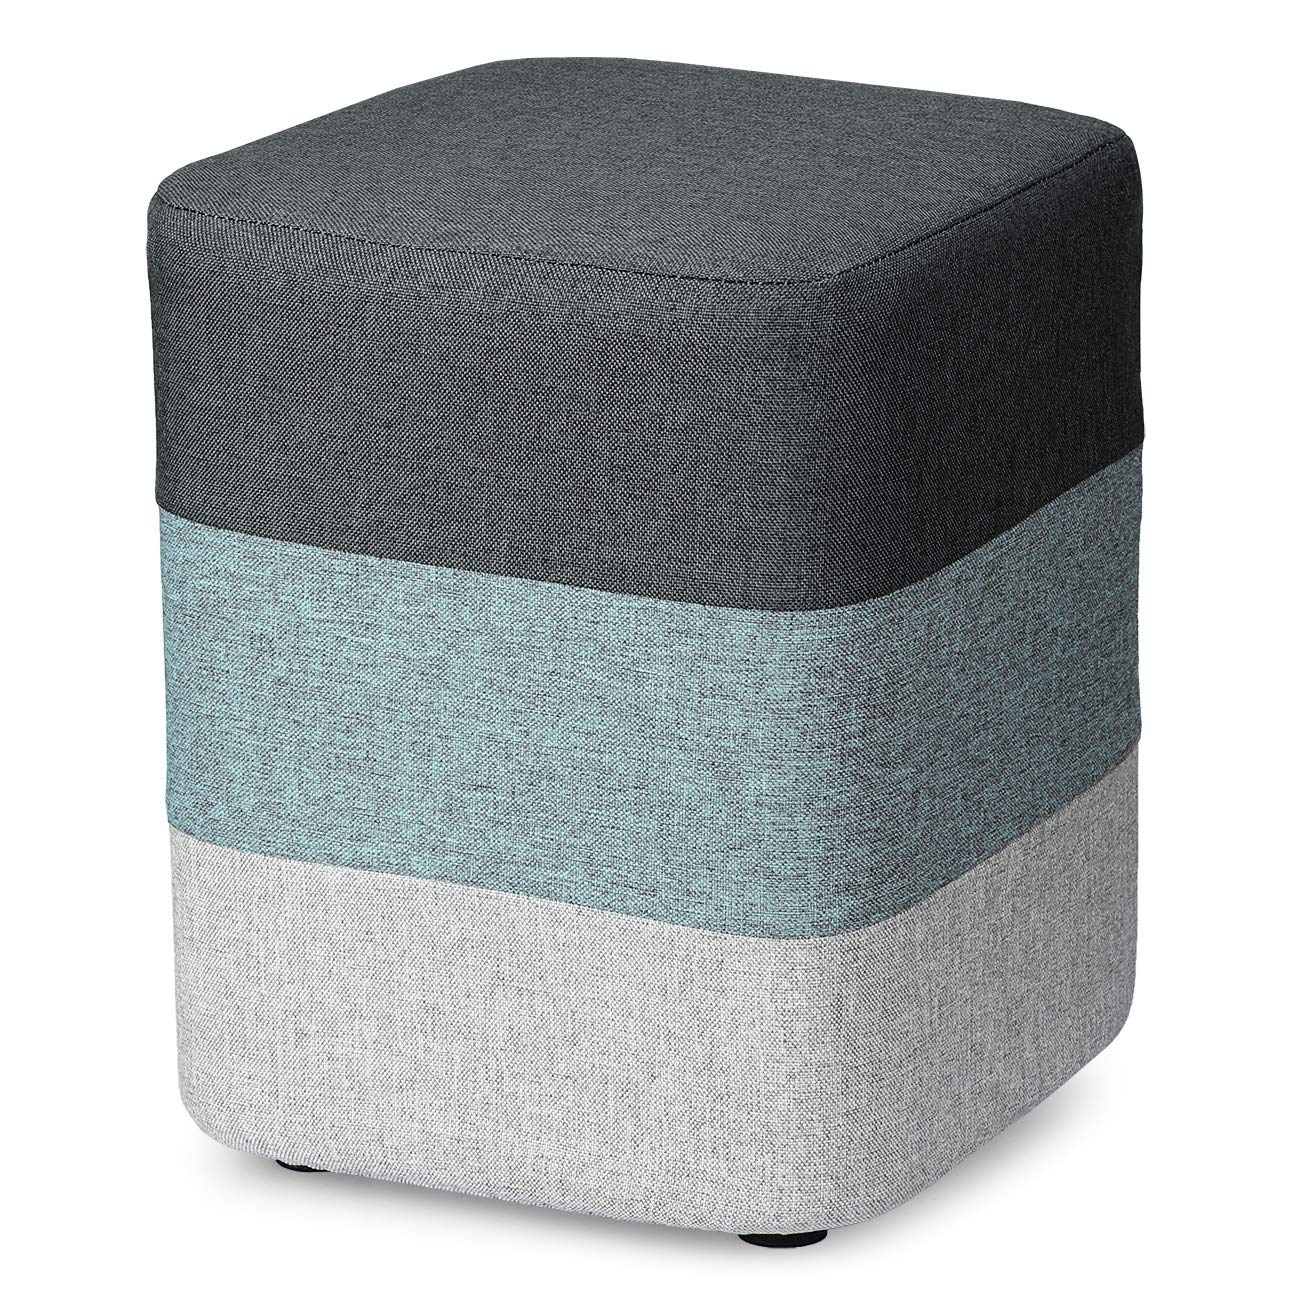 CDM product COQOFA DIY Soft Ottoman Foot Rest Stool Square Sofa Stool Modern Furniture with Washable Cover and Memory Foam big image